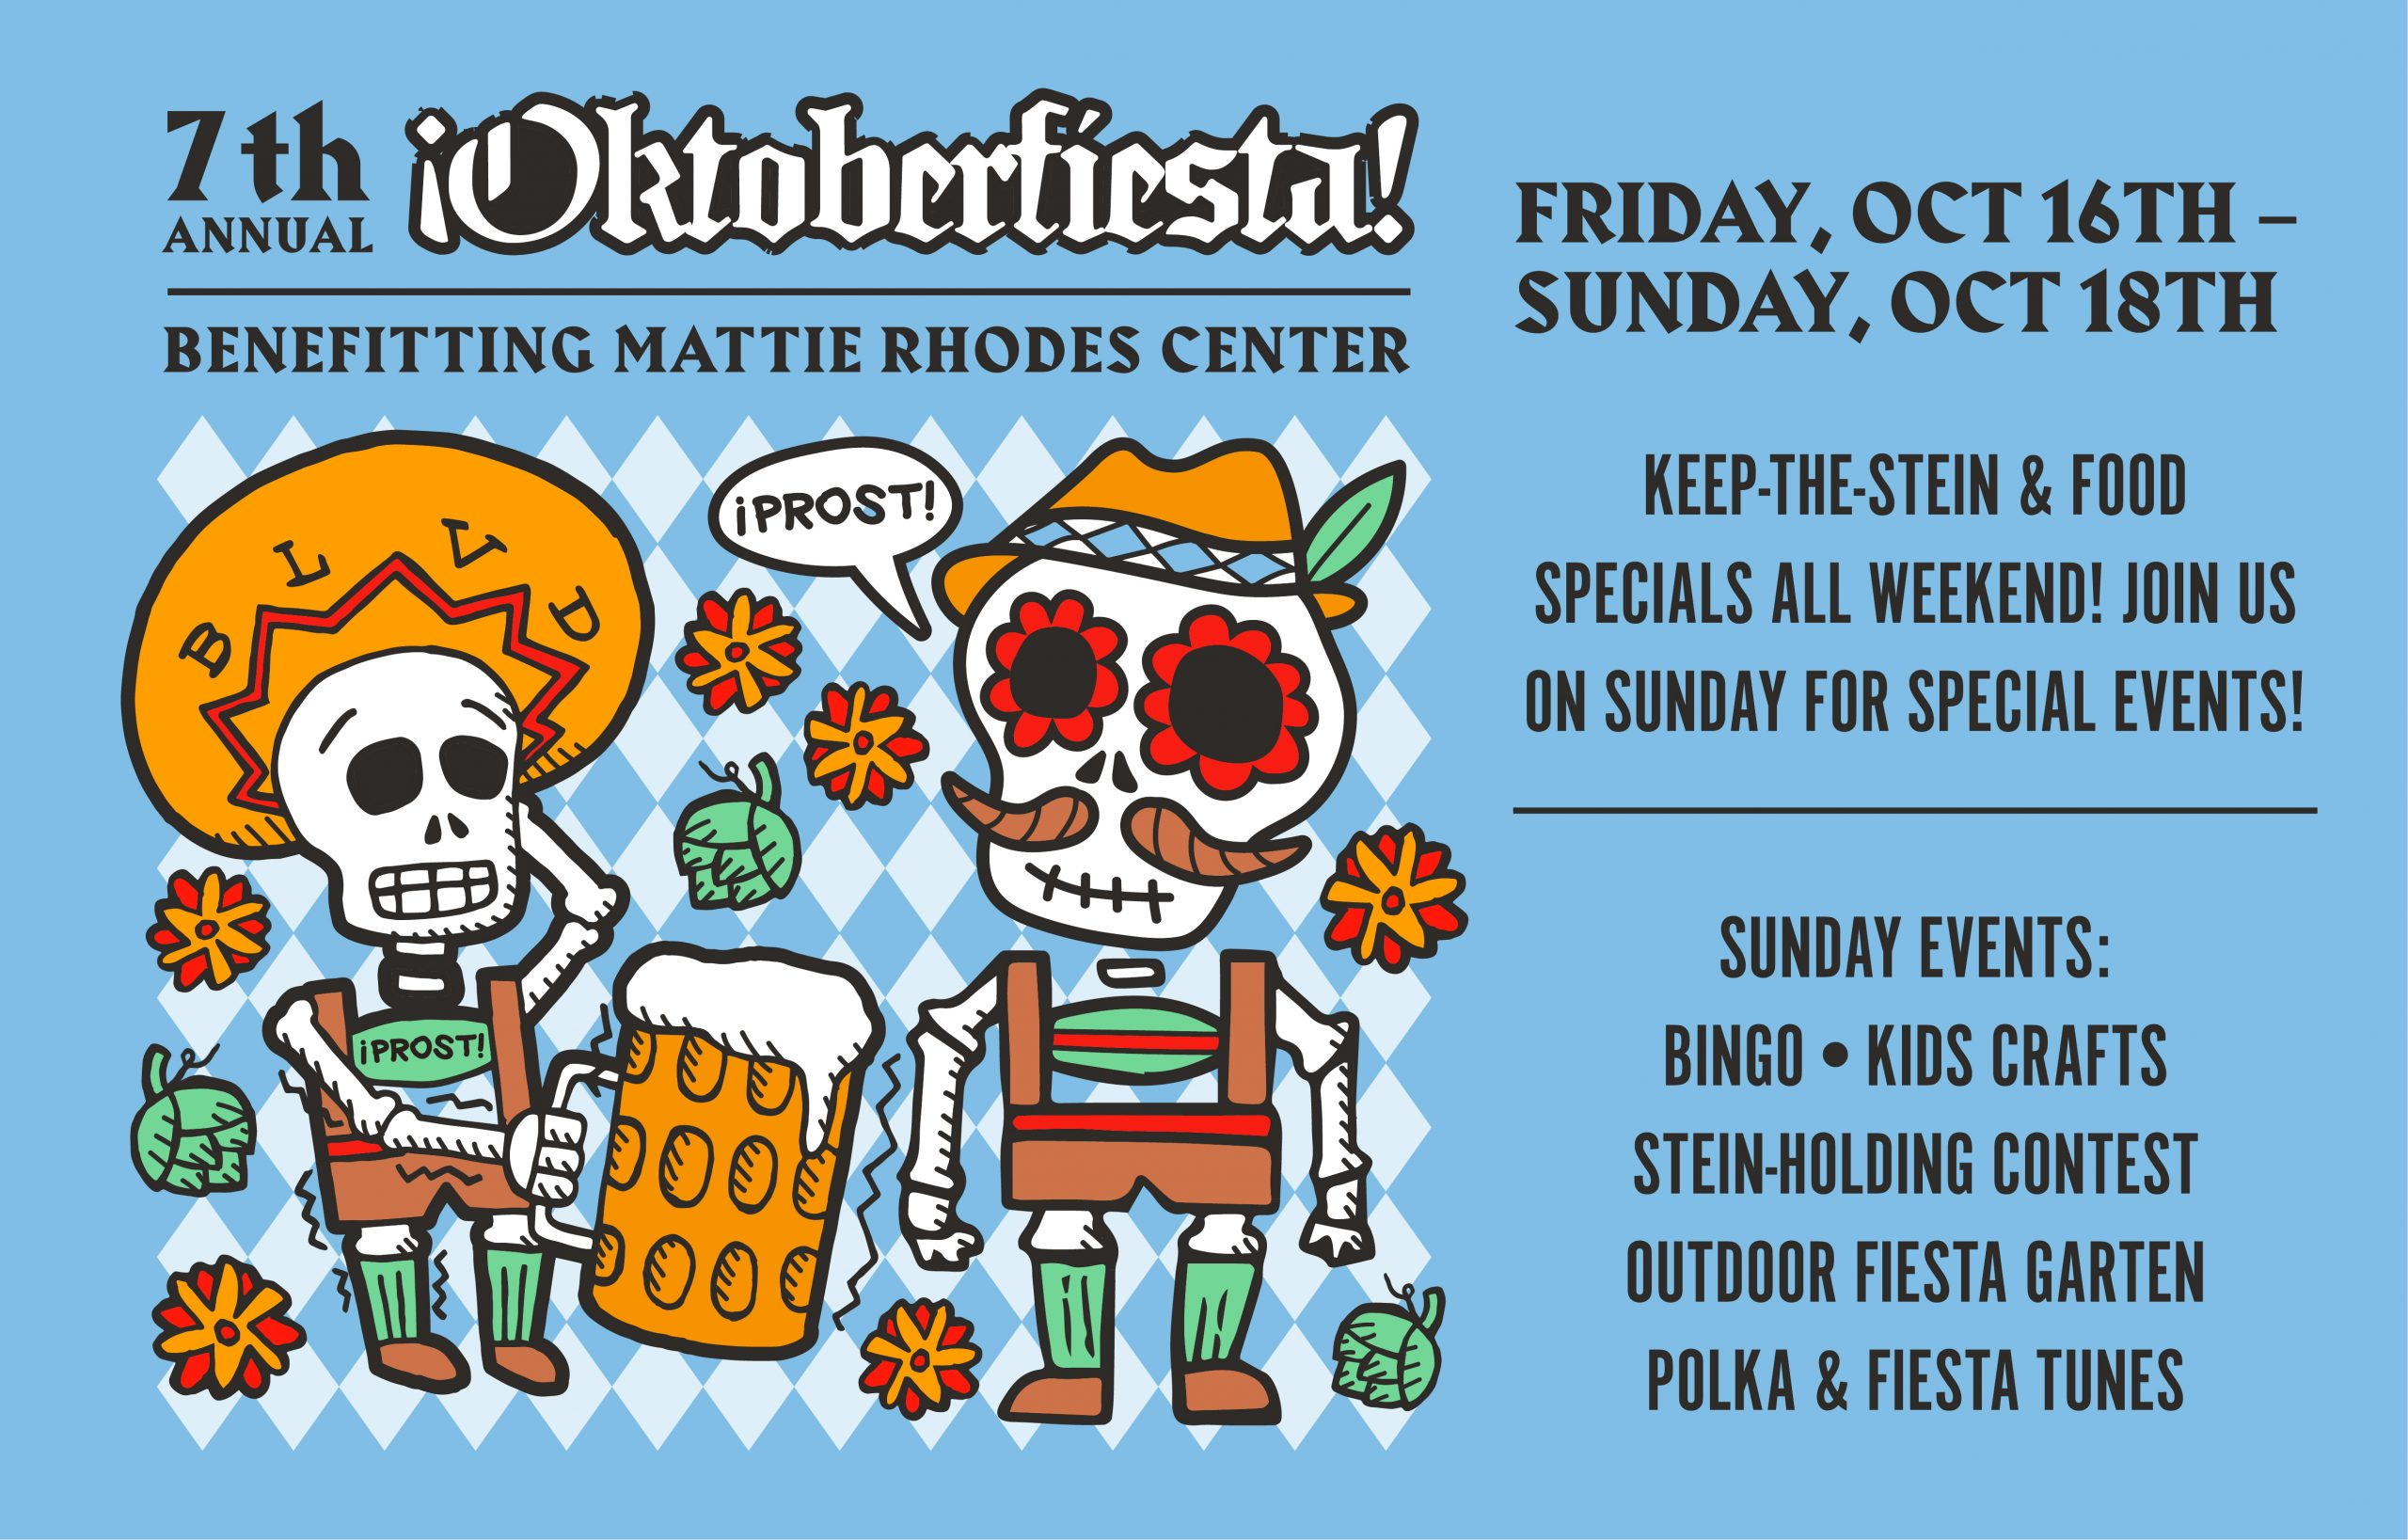 7th Annual Oktoberfiesta at Boulevard Tours and Rec Center